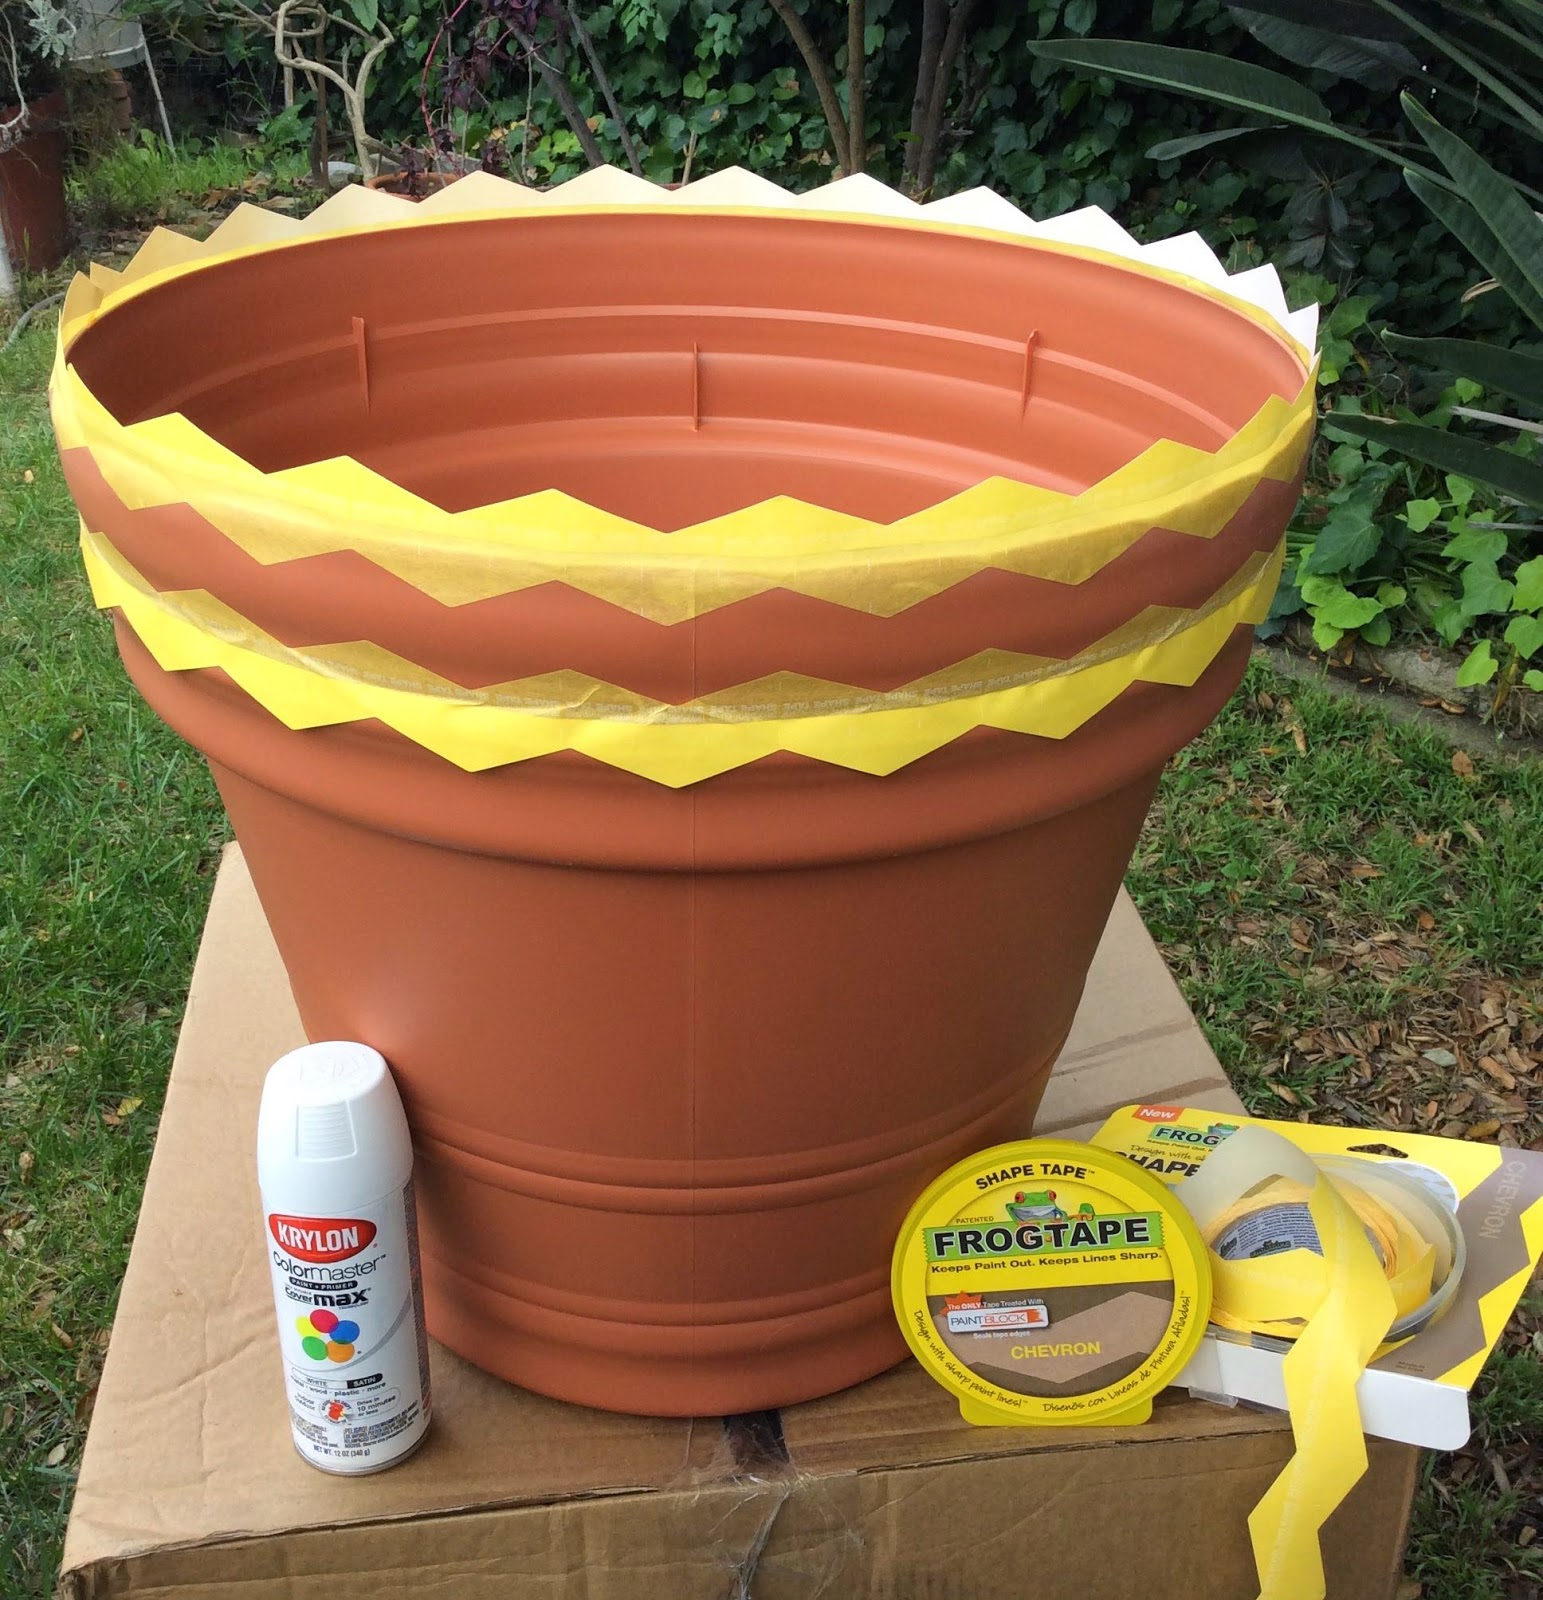 how to paint kylon stripes quotes frog tape zig zag line Fiskars planters, stefanie girard